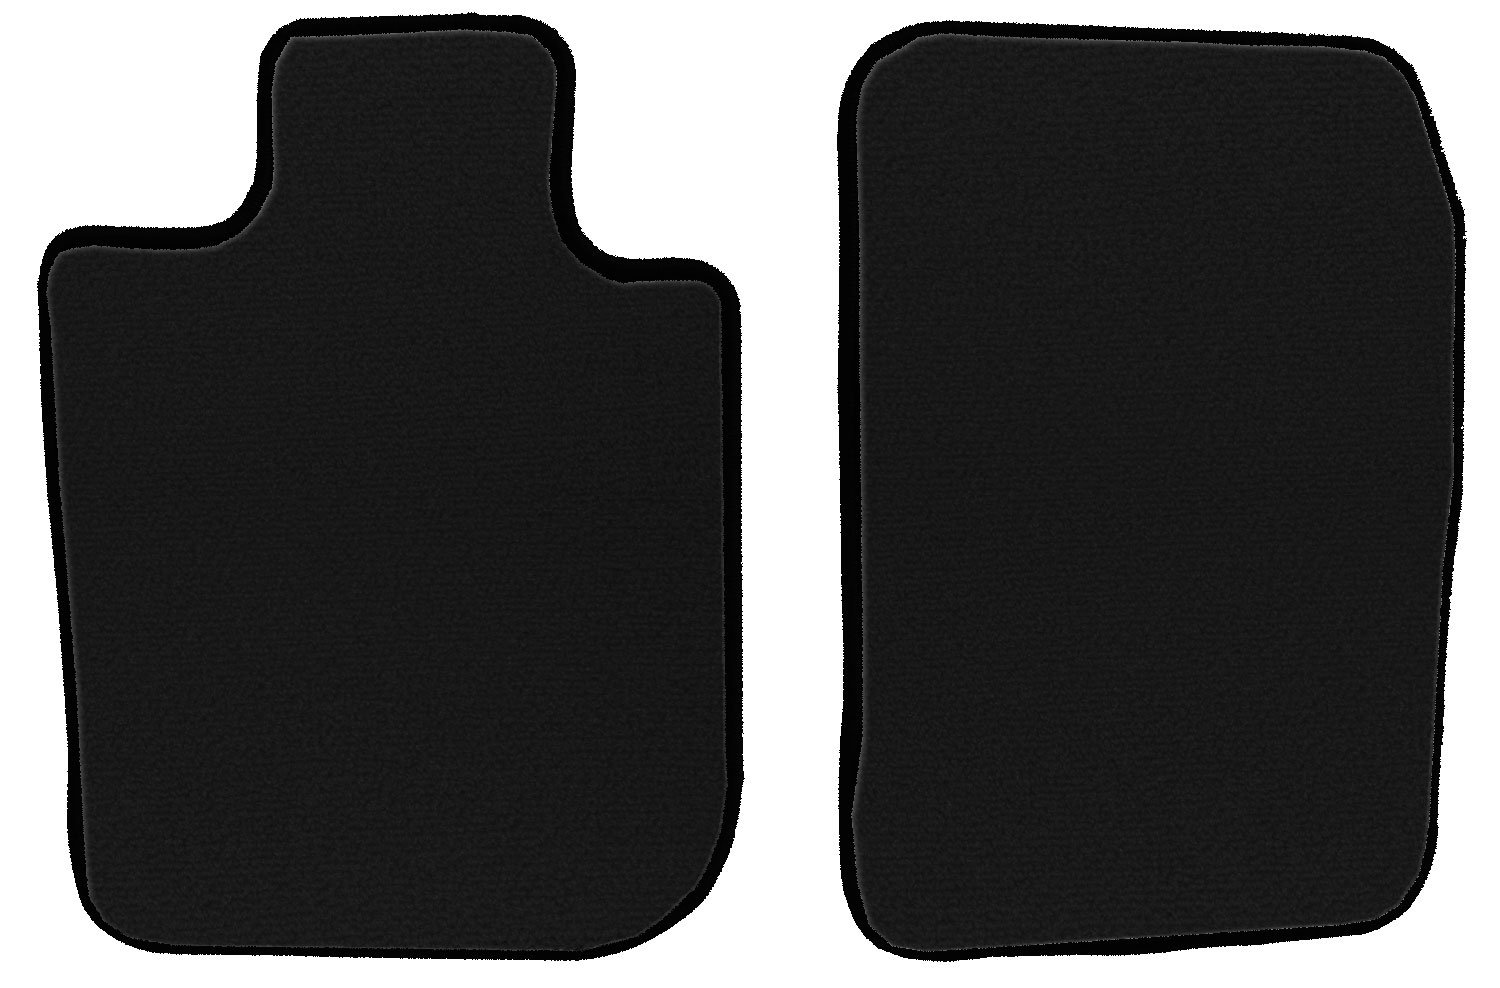 2015 GGBAILEY D2567A-F1A-BK-LP Custom Fit Car Mats for 2011 2016 2017 2013 2018 Buick Regal Black Loop Driver /& Passenger Floor 2012 2014